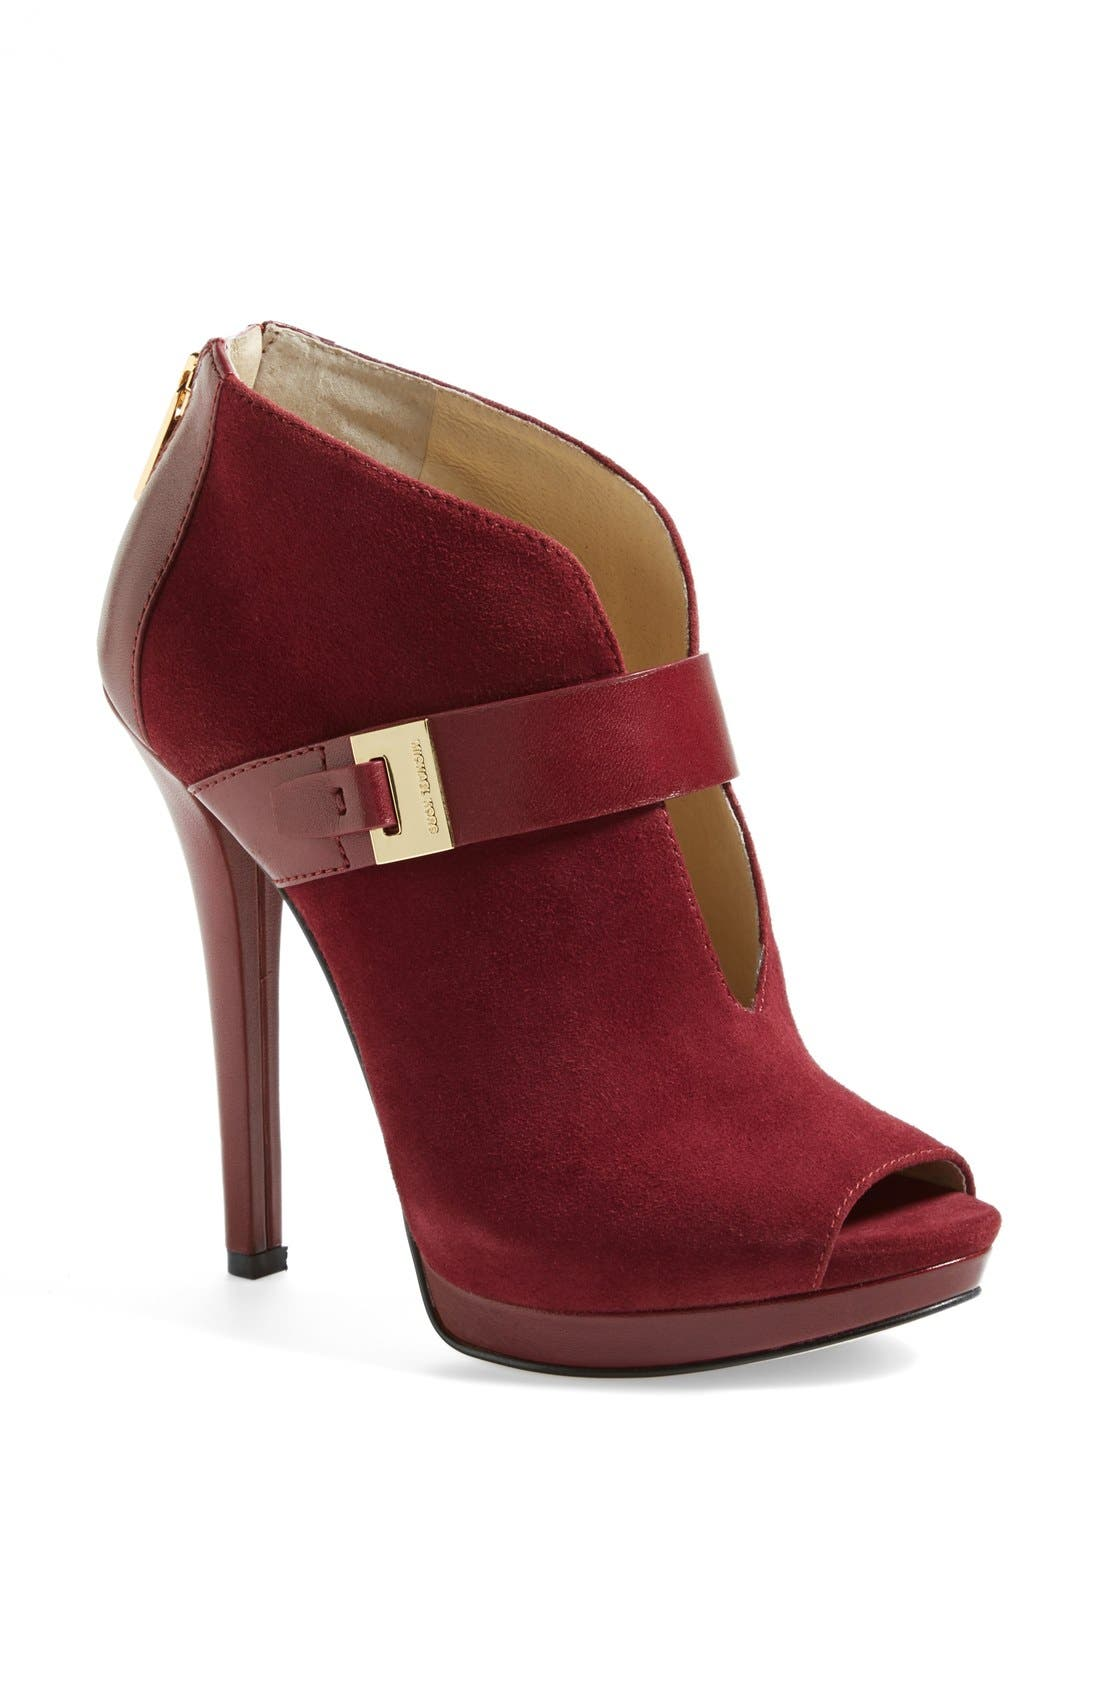 Alternate Image 1 Selected - MICHAEL Michael Kors 'Guiliana' Peep Toe Bootie (Women)